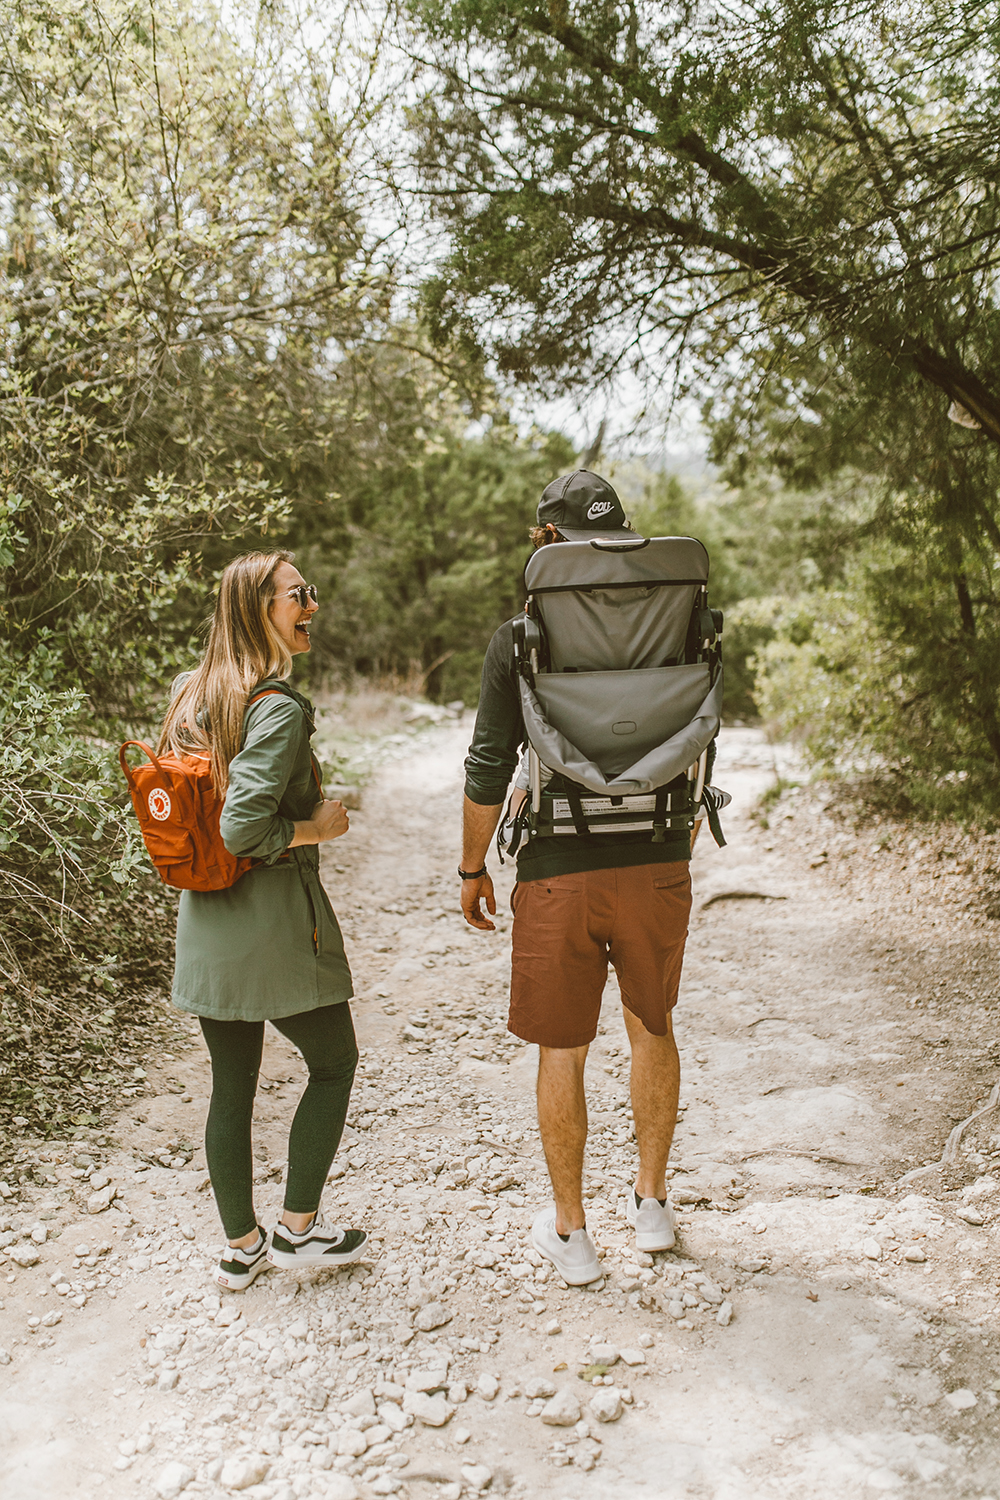 livvyland-blog-olivia-watson-austin-texas-greenbelt-hike-nature-walk-fjallraven-kanken-mini-autumn-leaf-baby-backpack-4